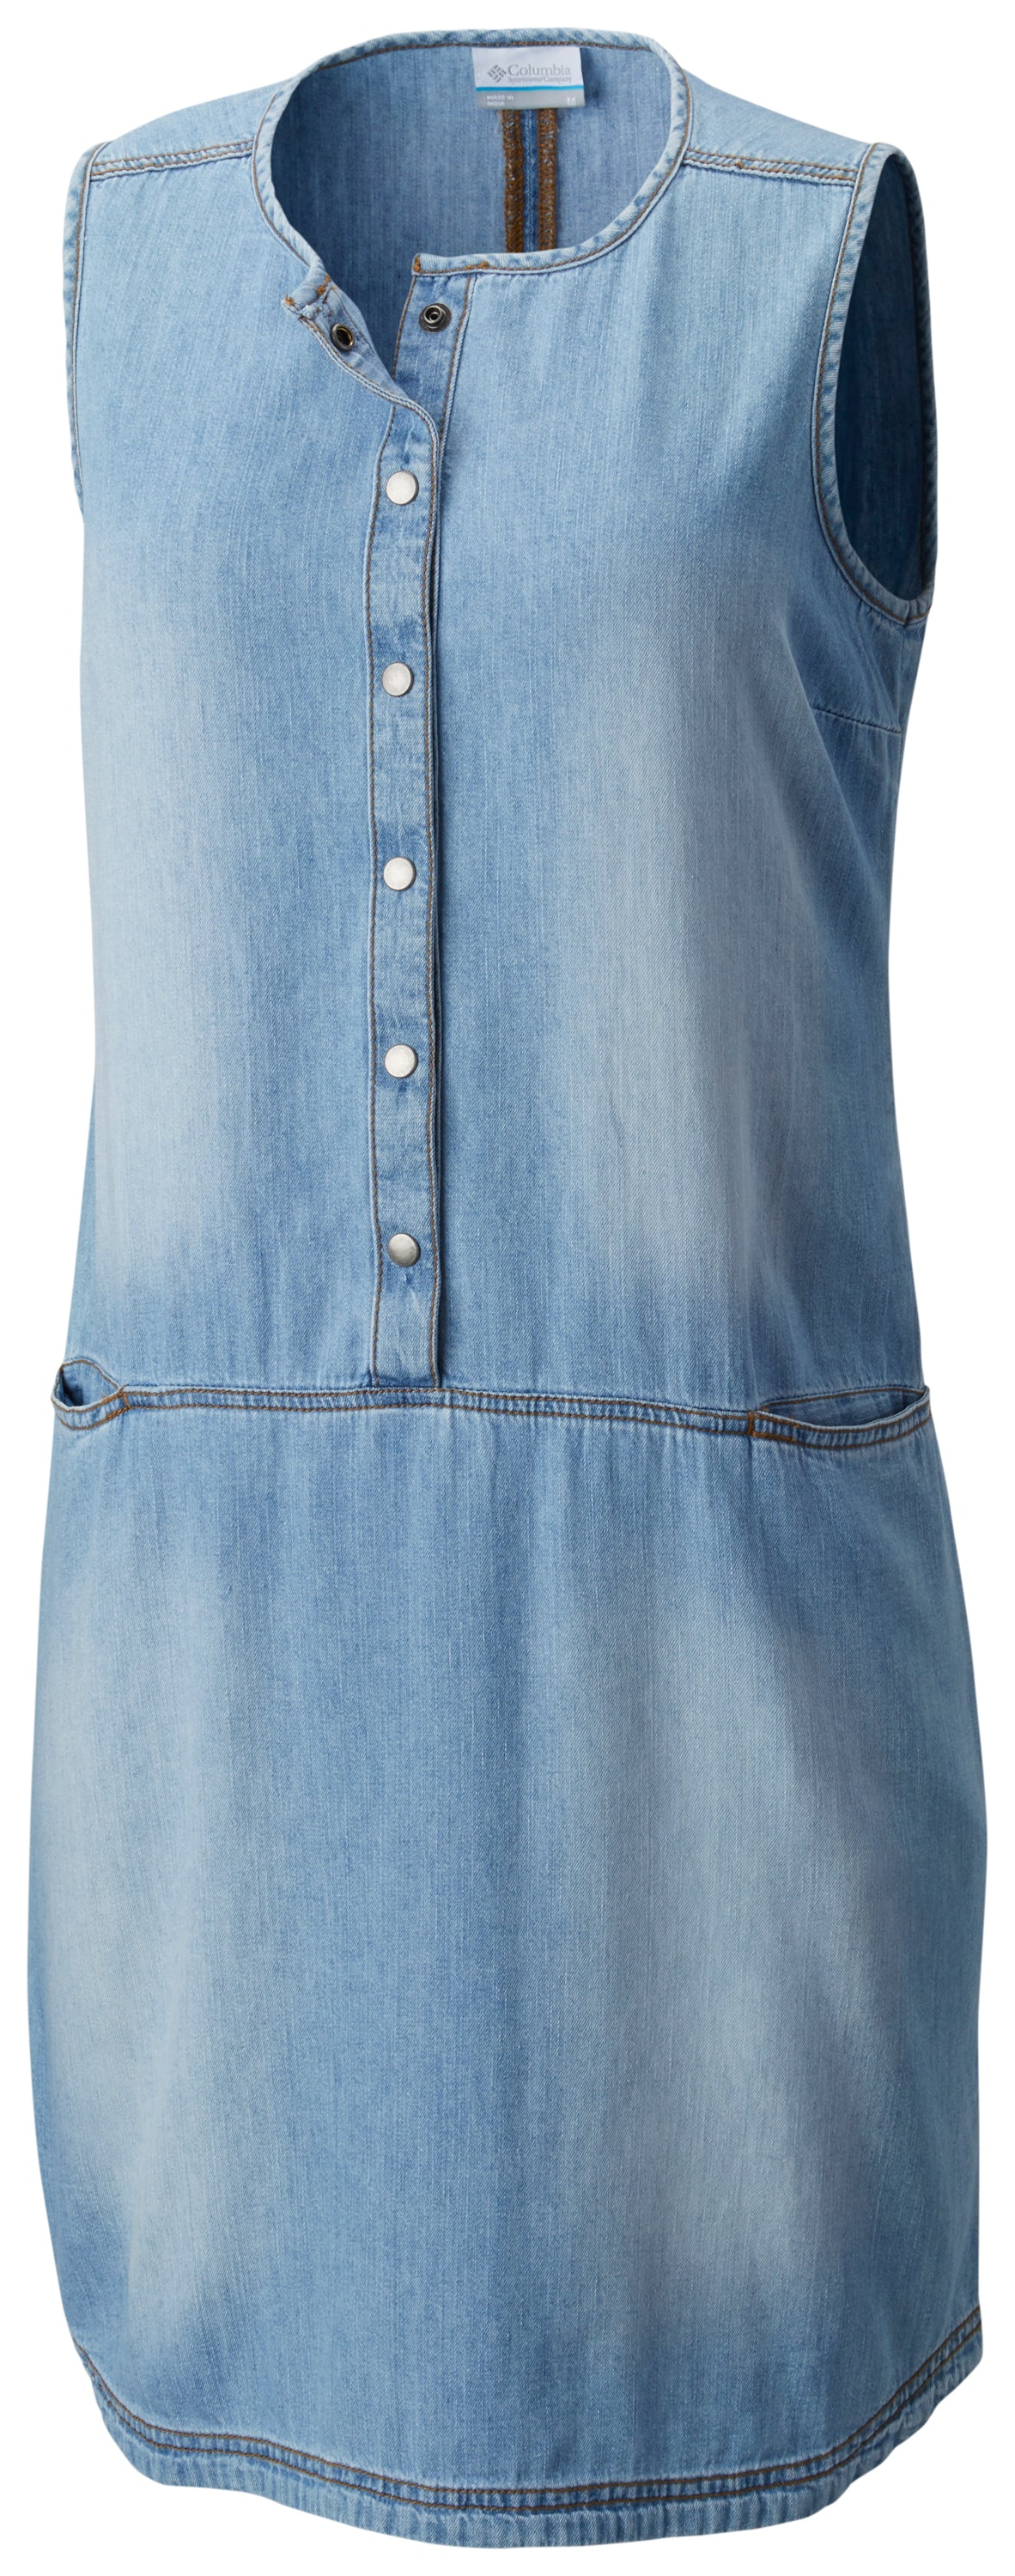 Pilot Peak䋢 Chambray Dress Light Indigo by Columbia